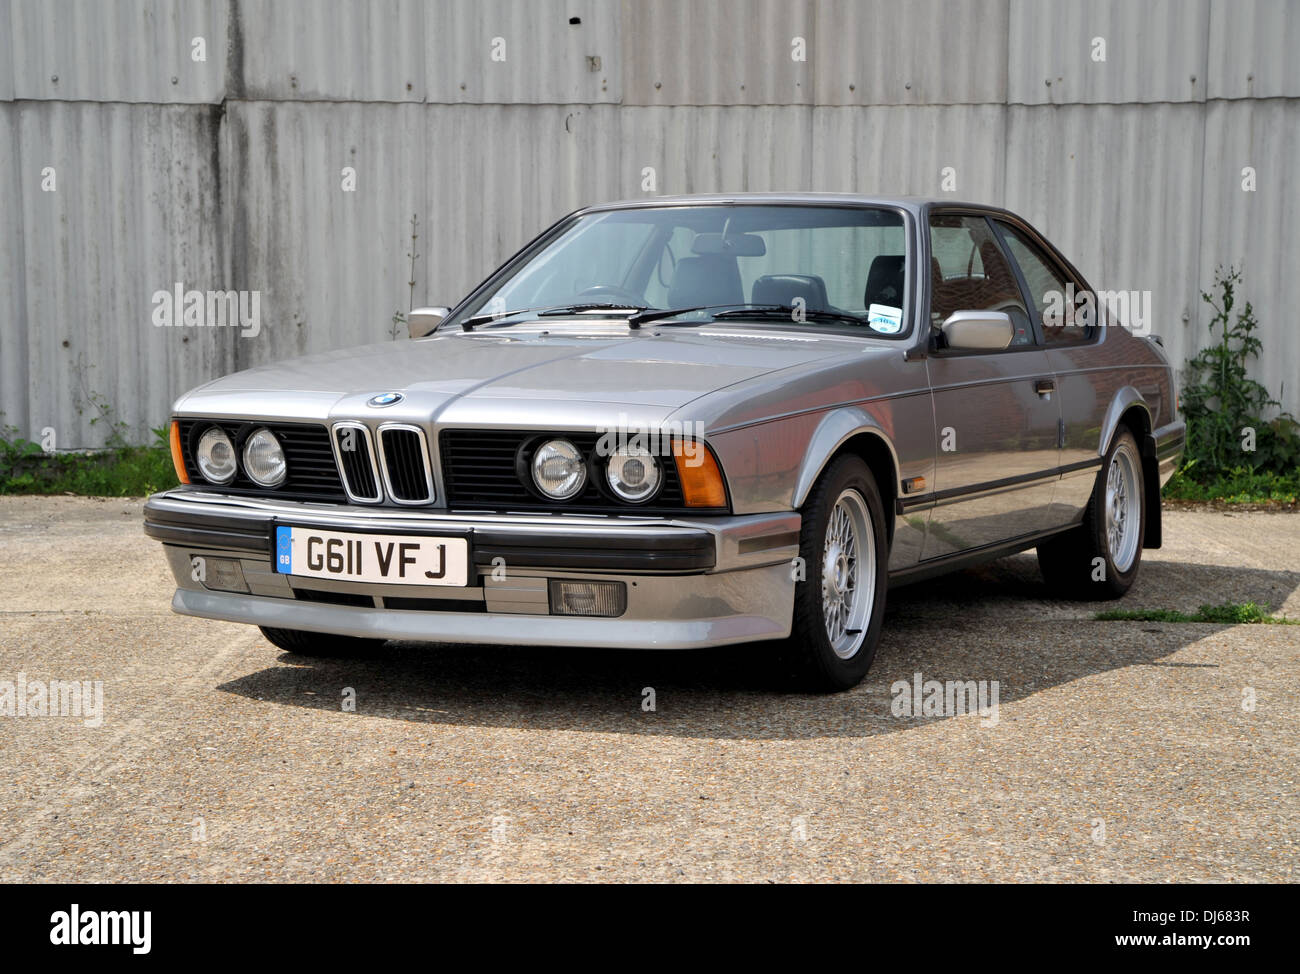 1990 Bmw 635 Csi Classic German Sports Coupe Car Stock Photo